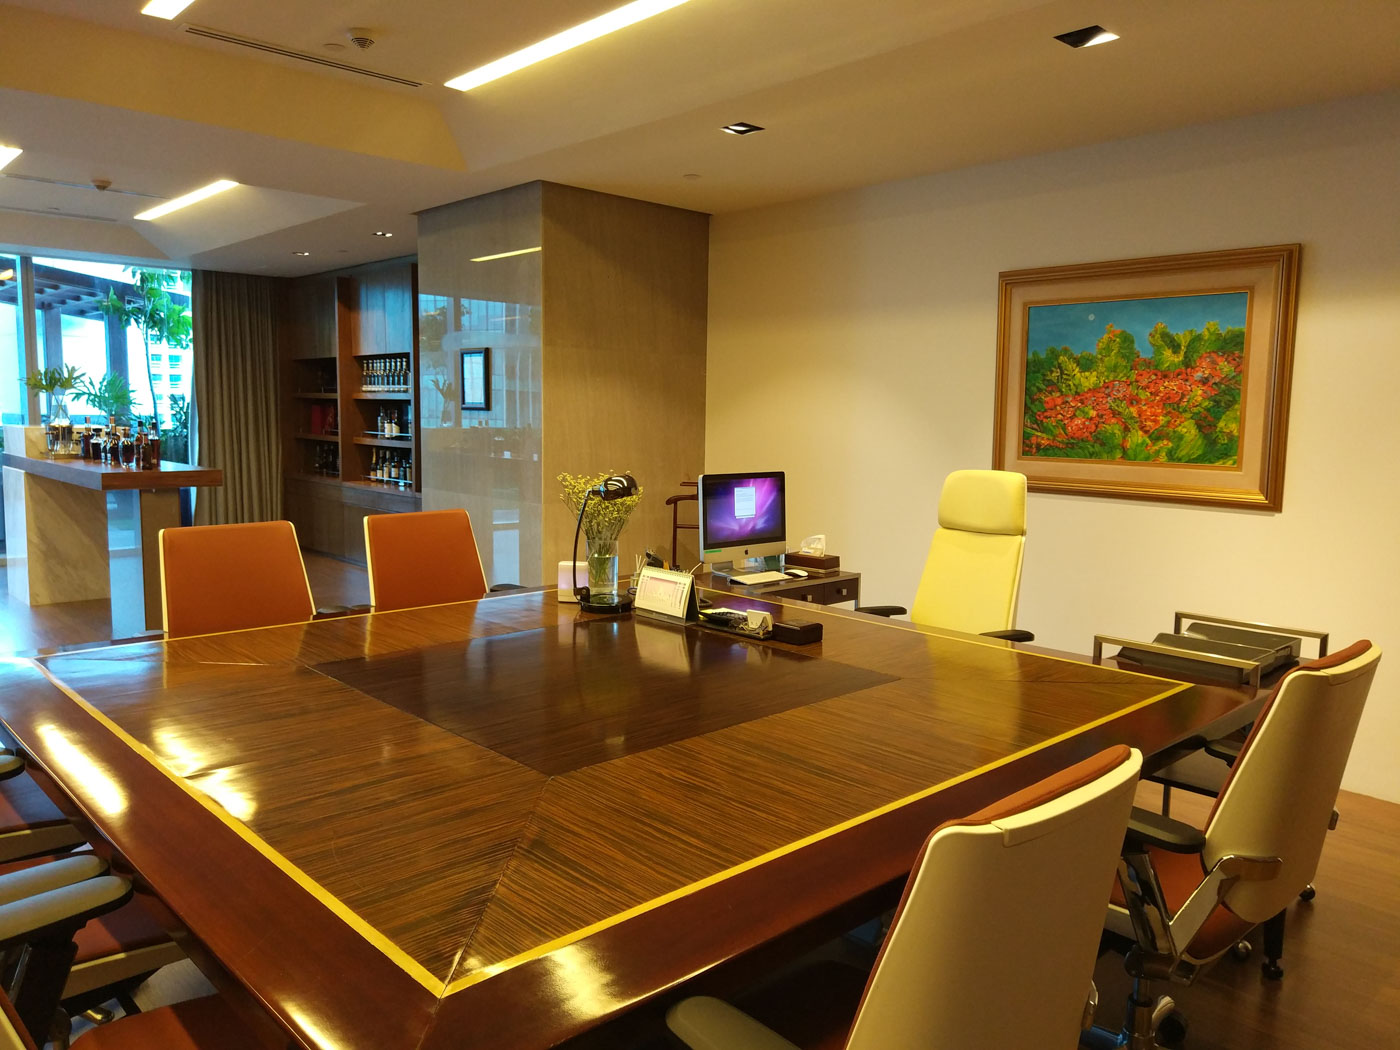 BREATHING SPACE. Alliance Global and Megaworld chairman Andrew Tan's private office comes equipped with its own sky garden, bar, dining area, and bathroom. Photo by Chris Schnabel/Rappler